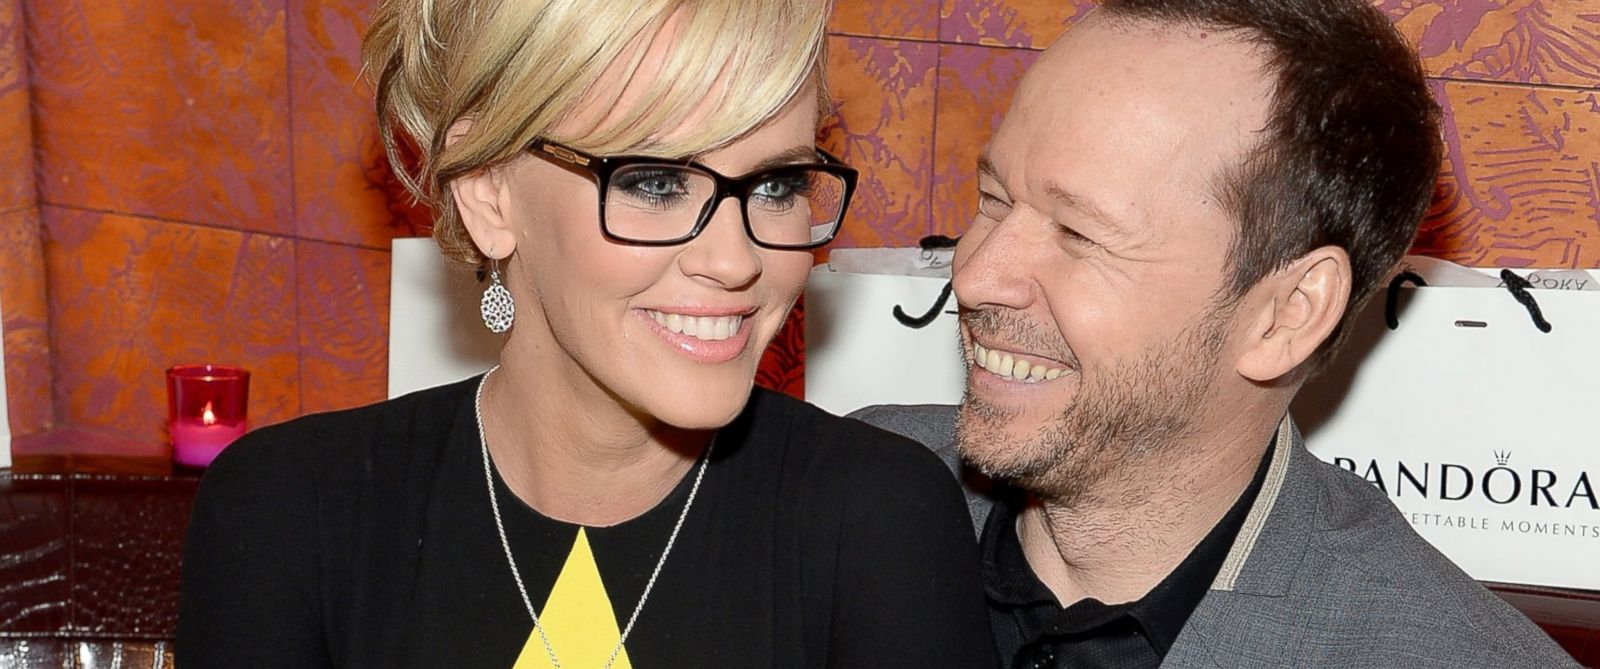 PHOTO: Jenny McCarty and Donnie Wahlberg attend PANDORA Jewelry presents a Pre-Mothers Day dinner with Jenny McCarty and friends, April 30, 2014, in New York City.